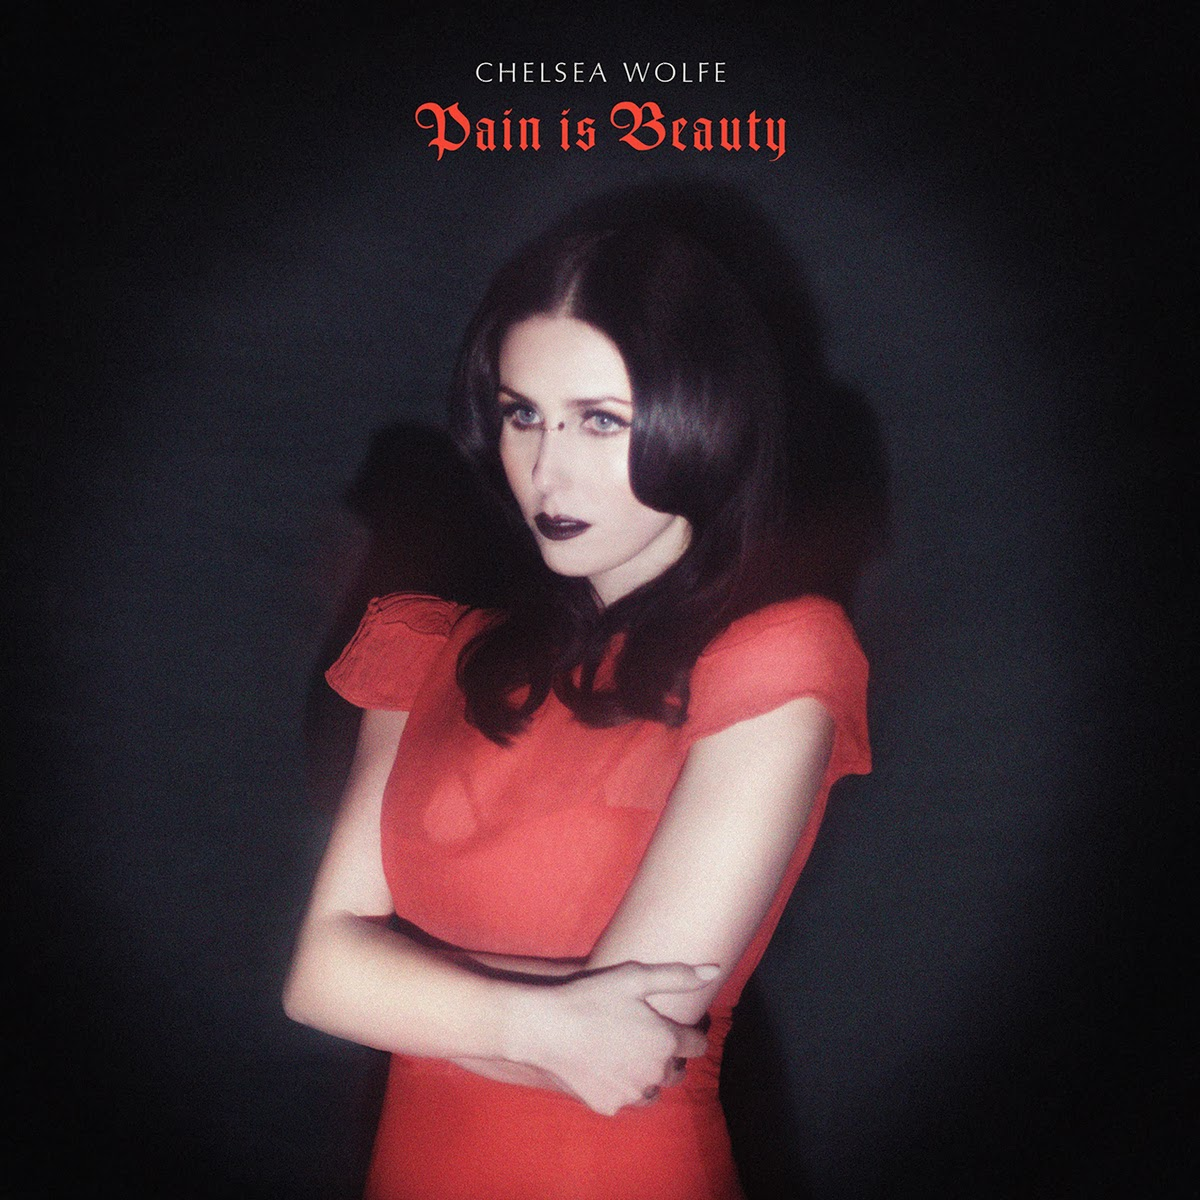 http://www.d4am.net/2014/02/chelsea-wolfe-pain-is-beauty.html